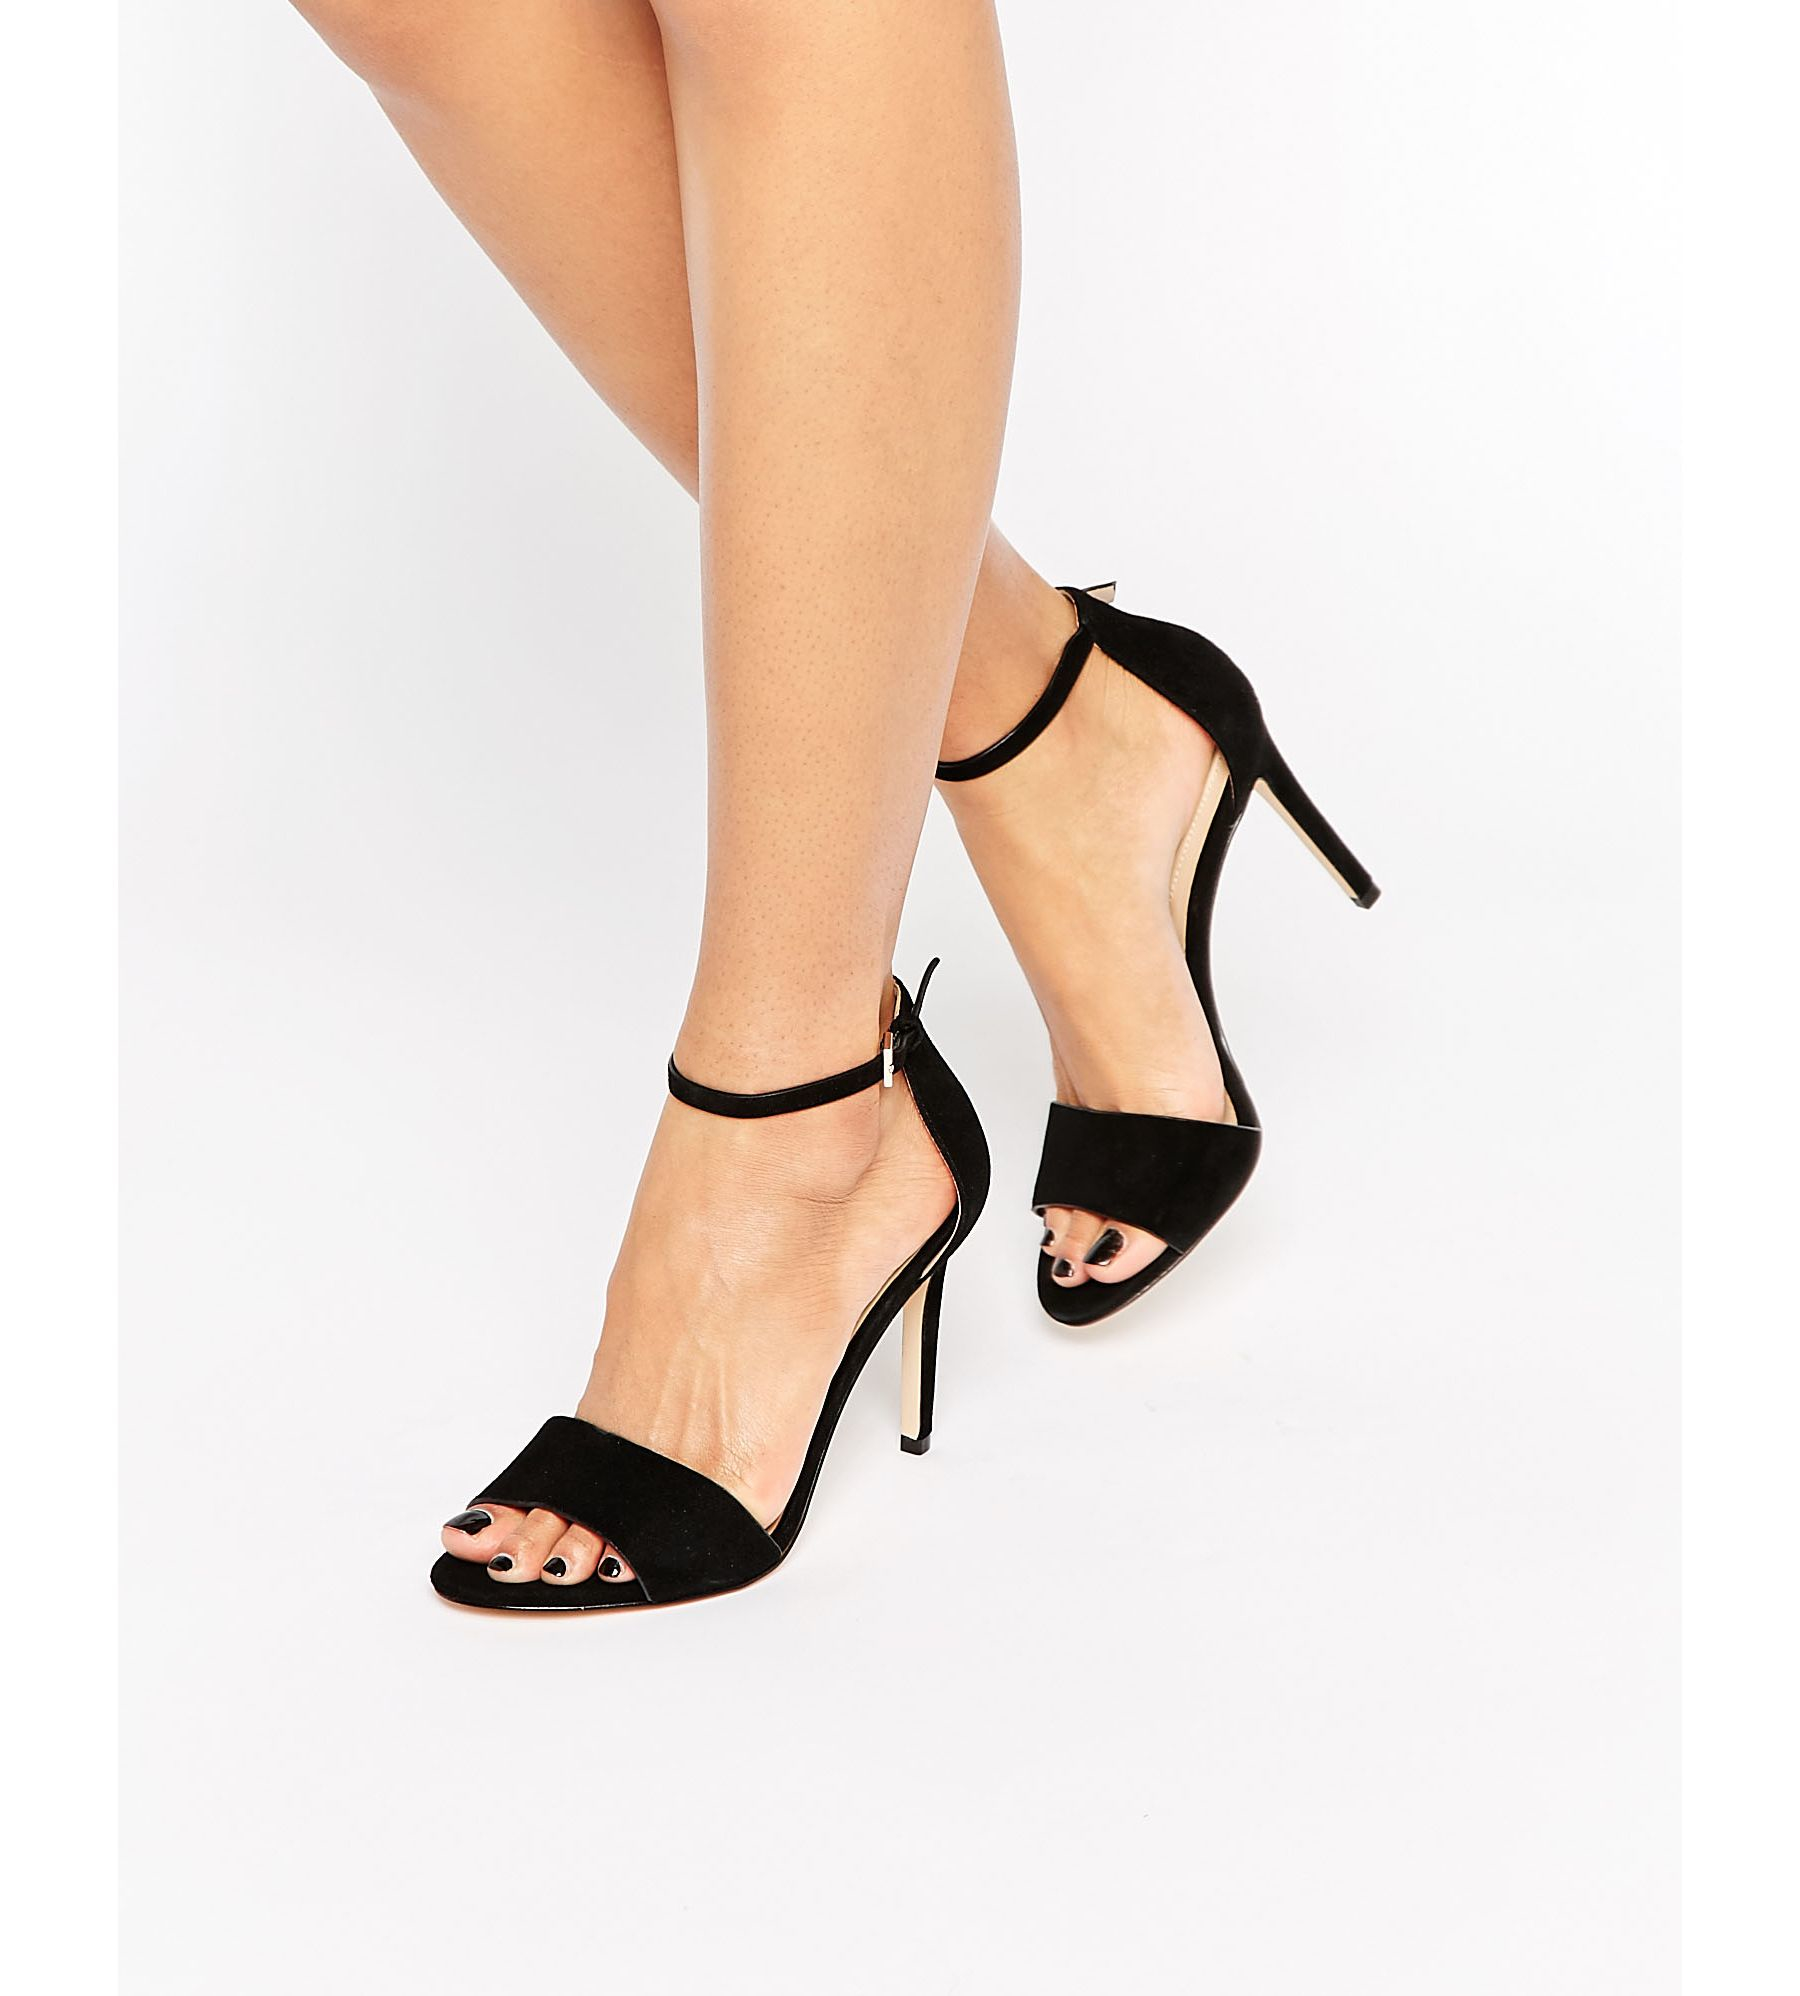 c29d1b7e270 Lyst - ALDO Ldo Fiolla Ankle Strap Suede Heeled Sandals in Black